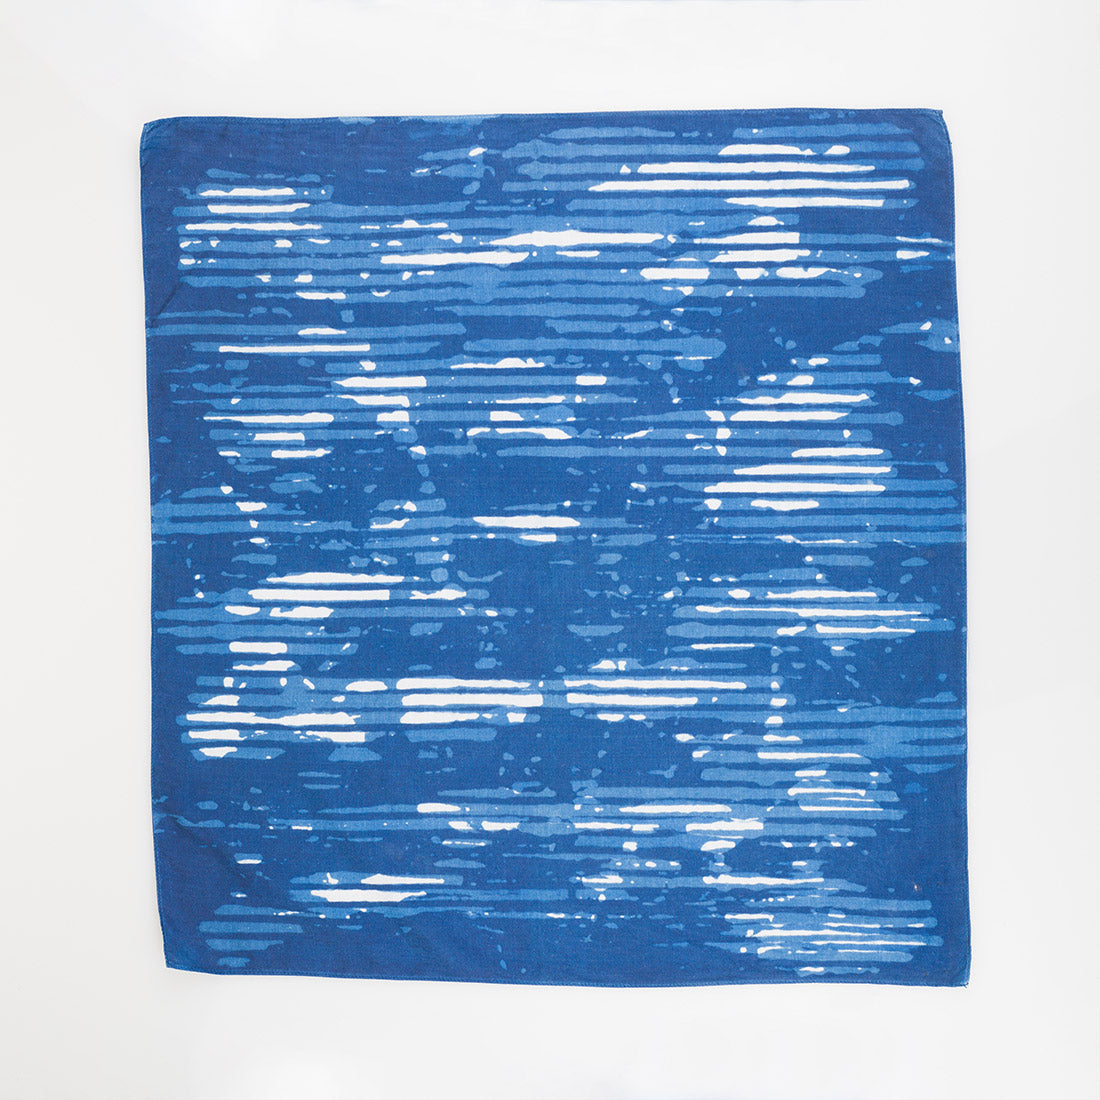 Indigo Silk Bandana - Mirage - Small Square - Slowstitch Studio